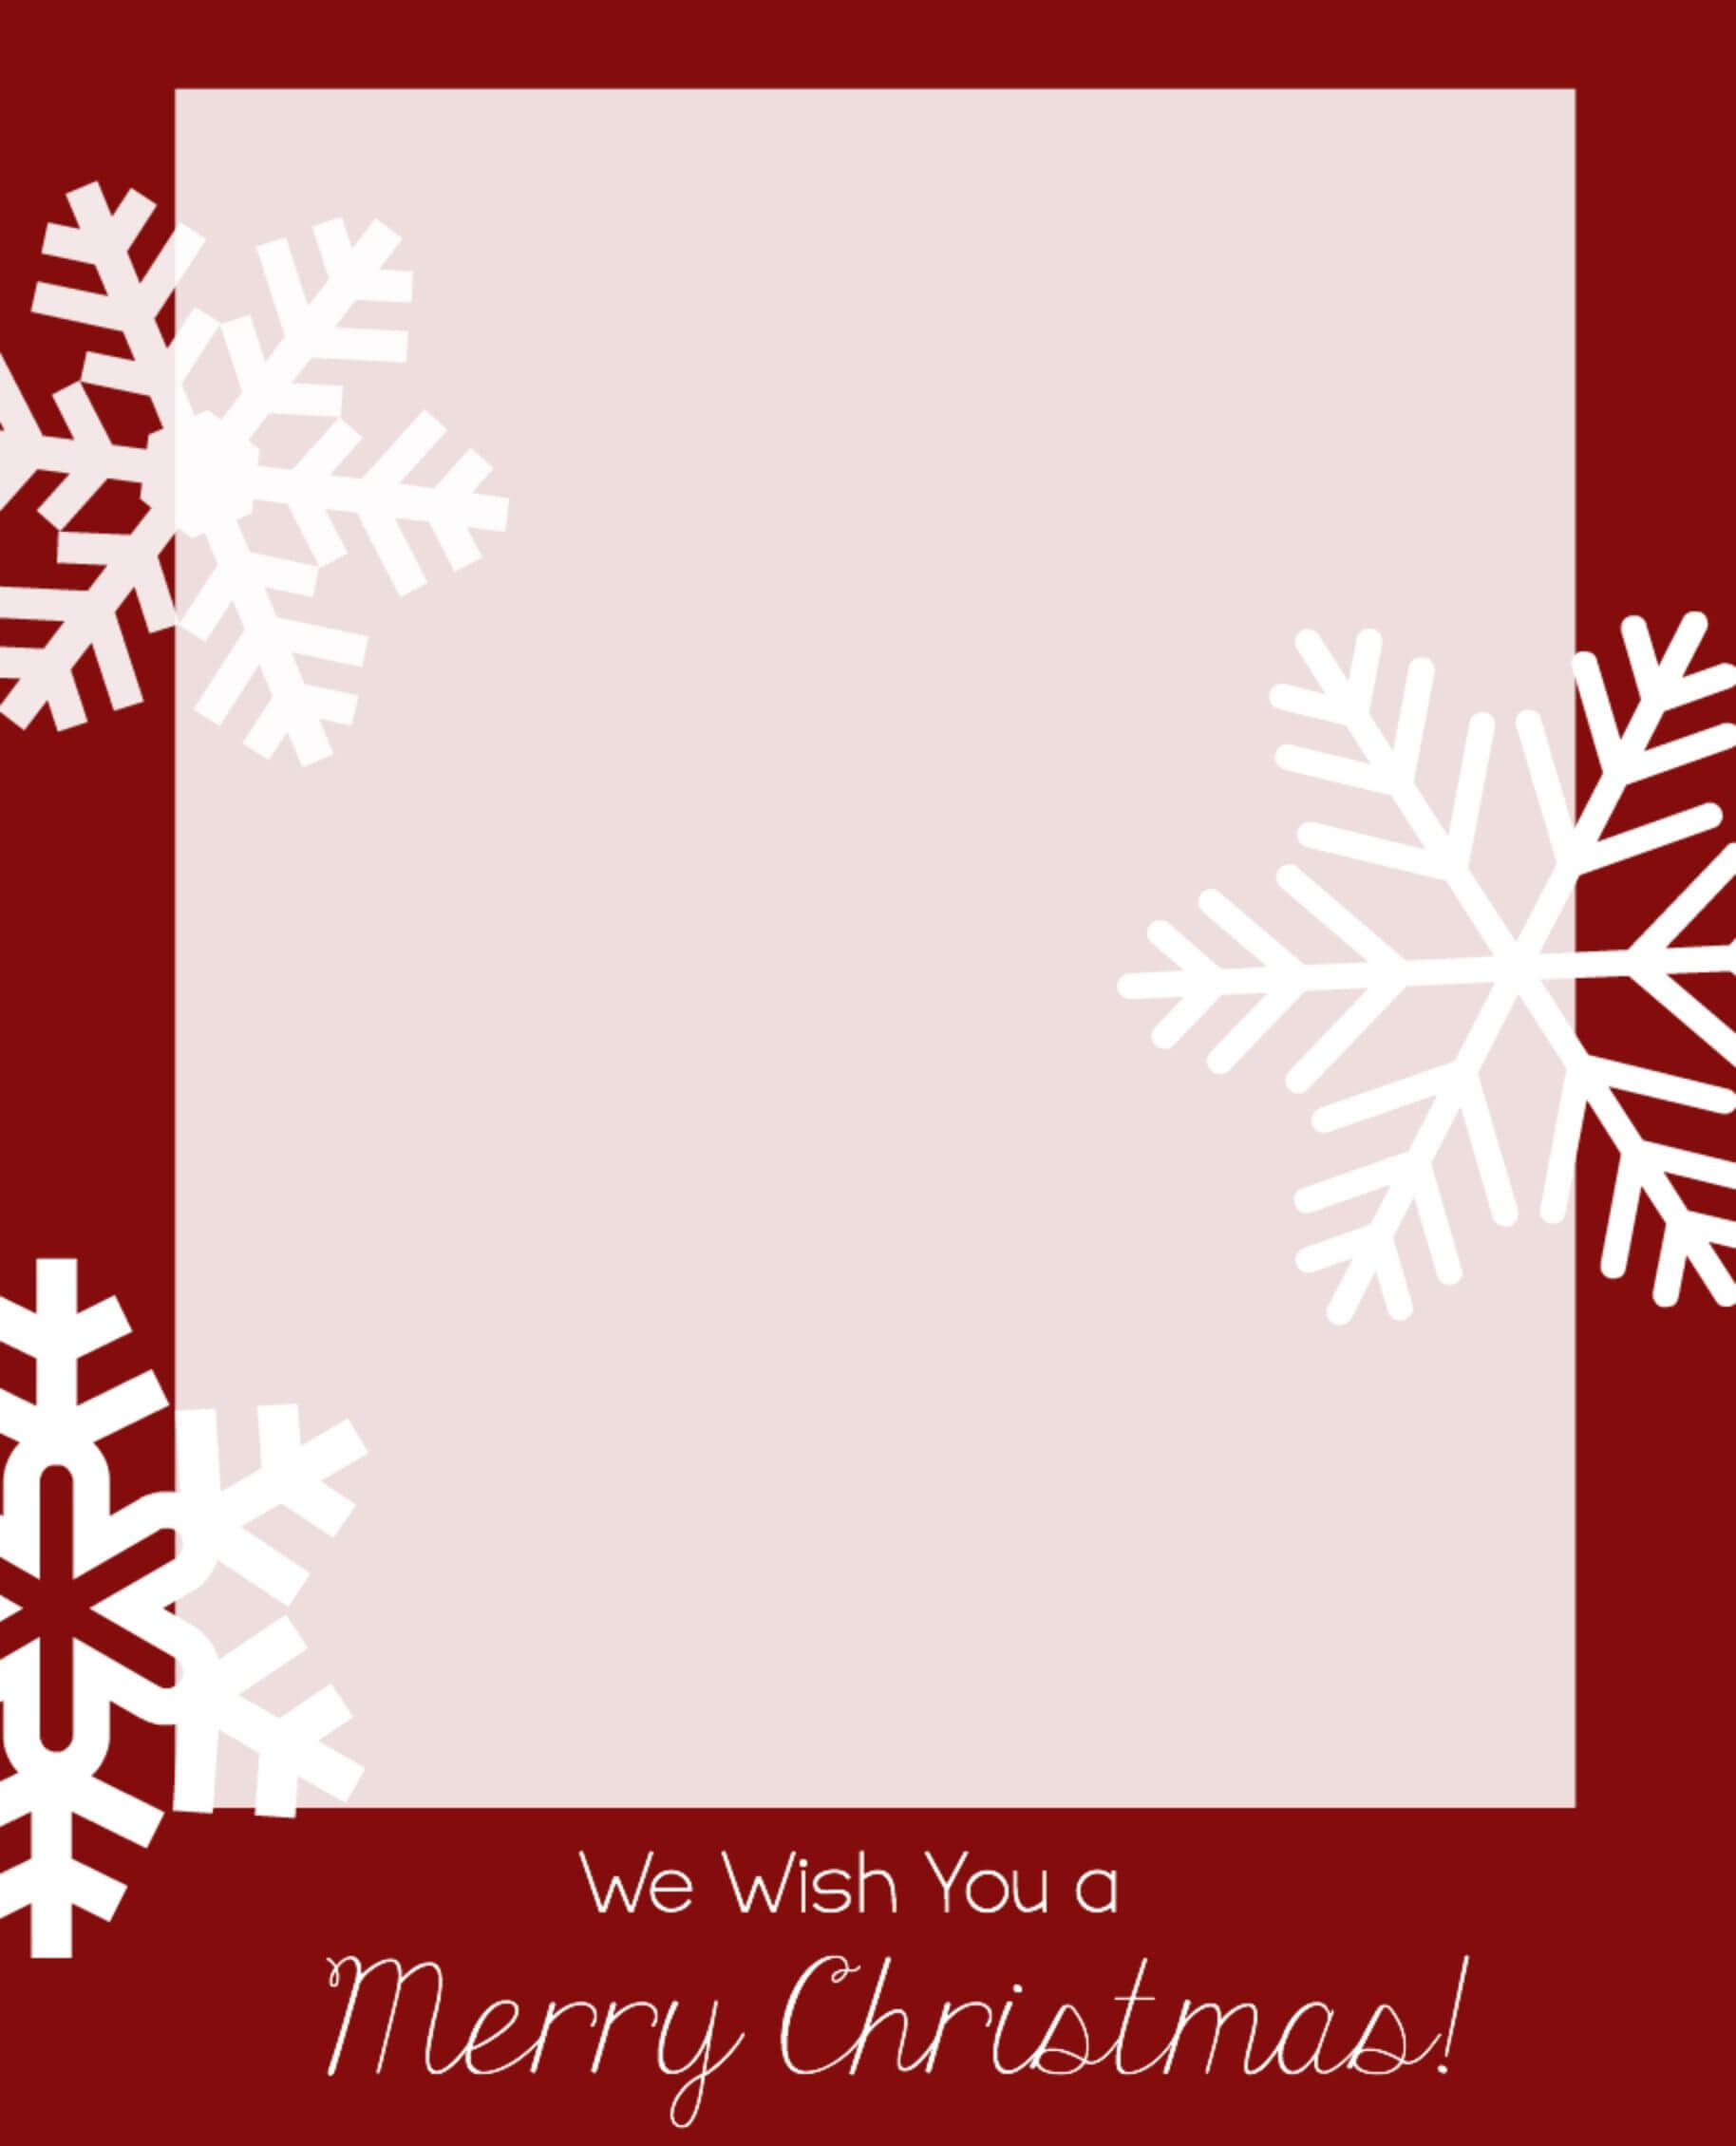 Free Christmas Card Templates | Christmas Card Template With Regard To Christmas Photo Cards Templates Free Downloads